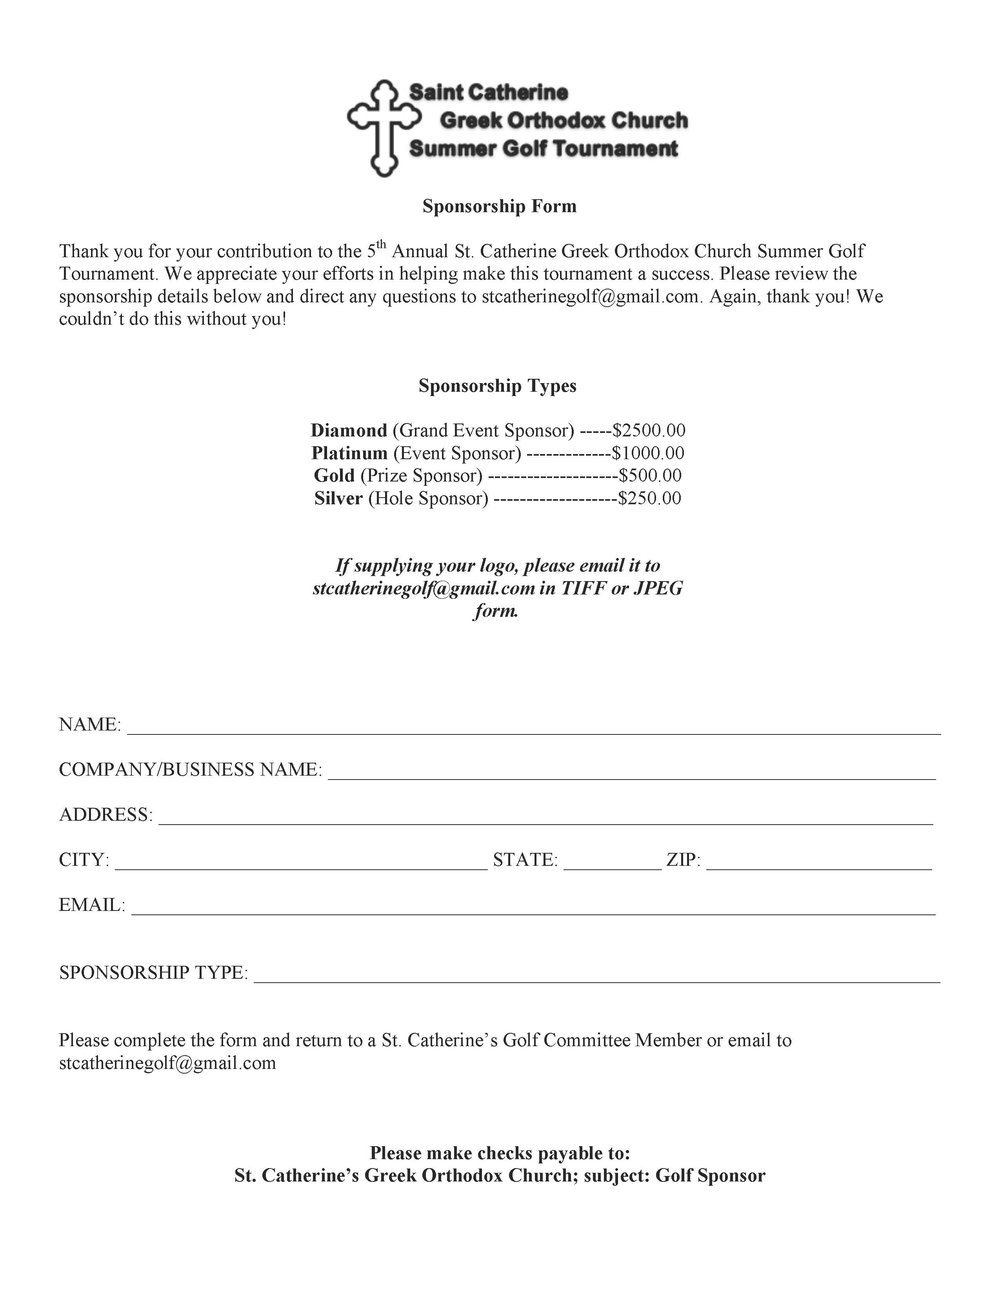 Sponsorship Letter and FormFinal_Page_1.jpg